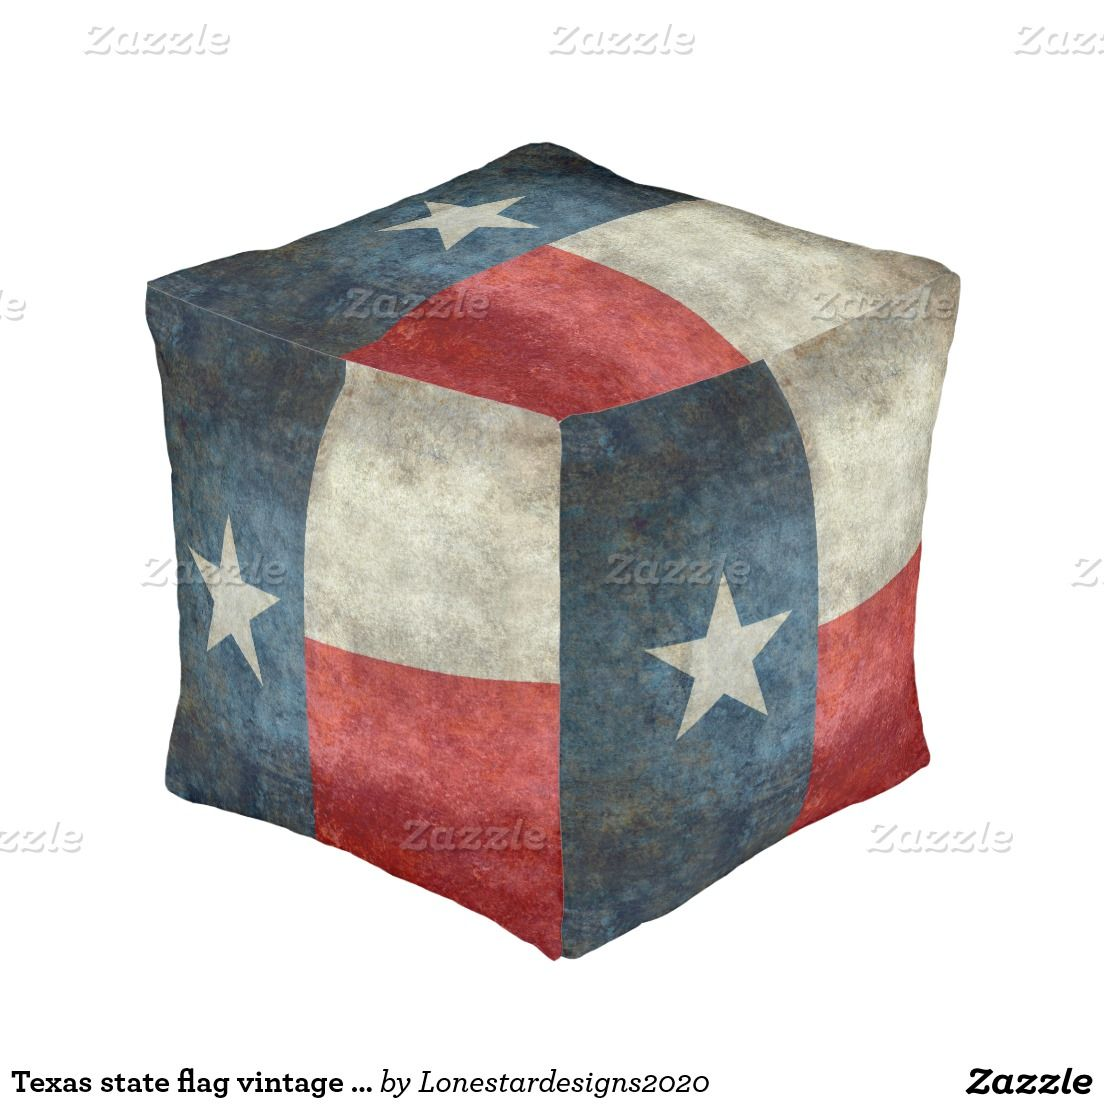 Texas state flag vintage retro style Square Pouf  #Homedecor #Room #accessories #Interior #decorating #Idea #Styles #Home